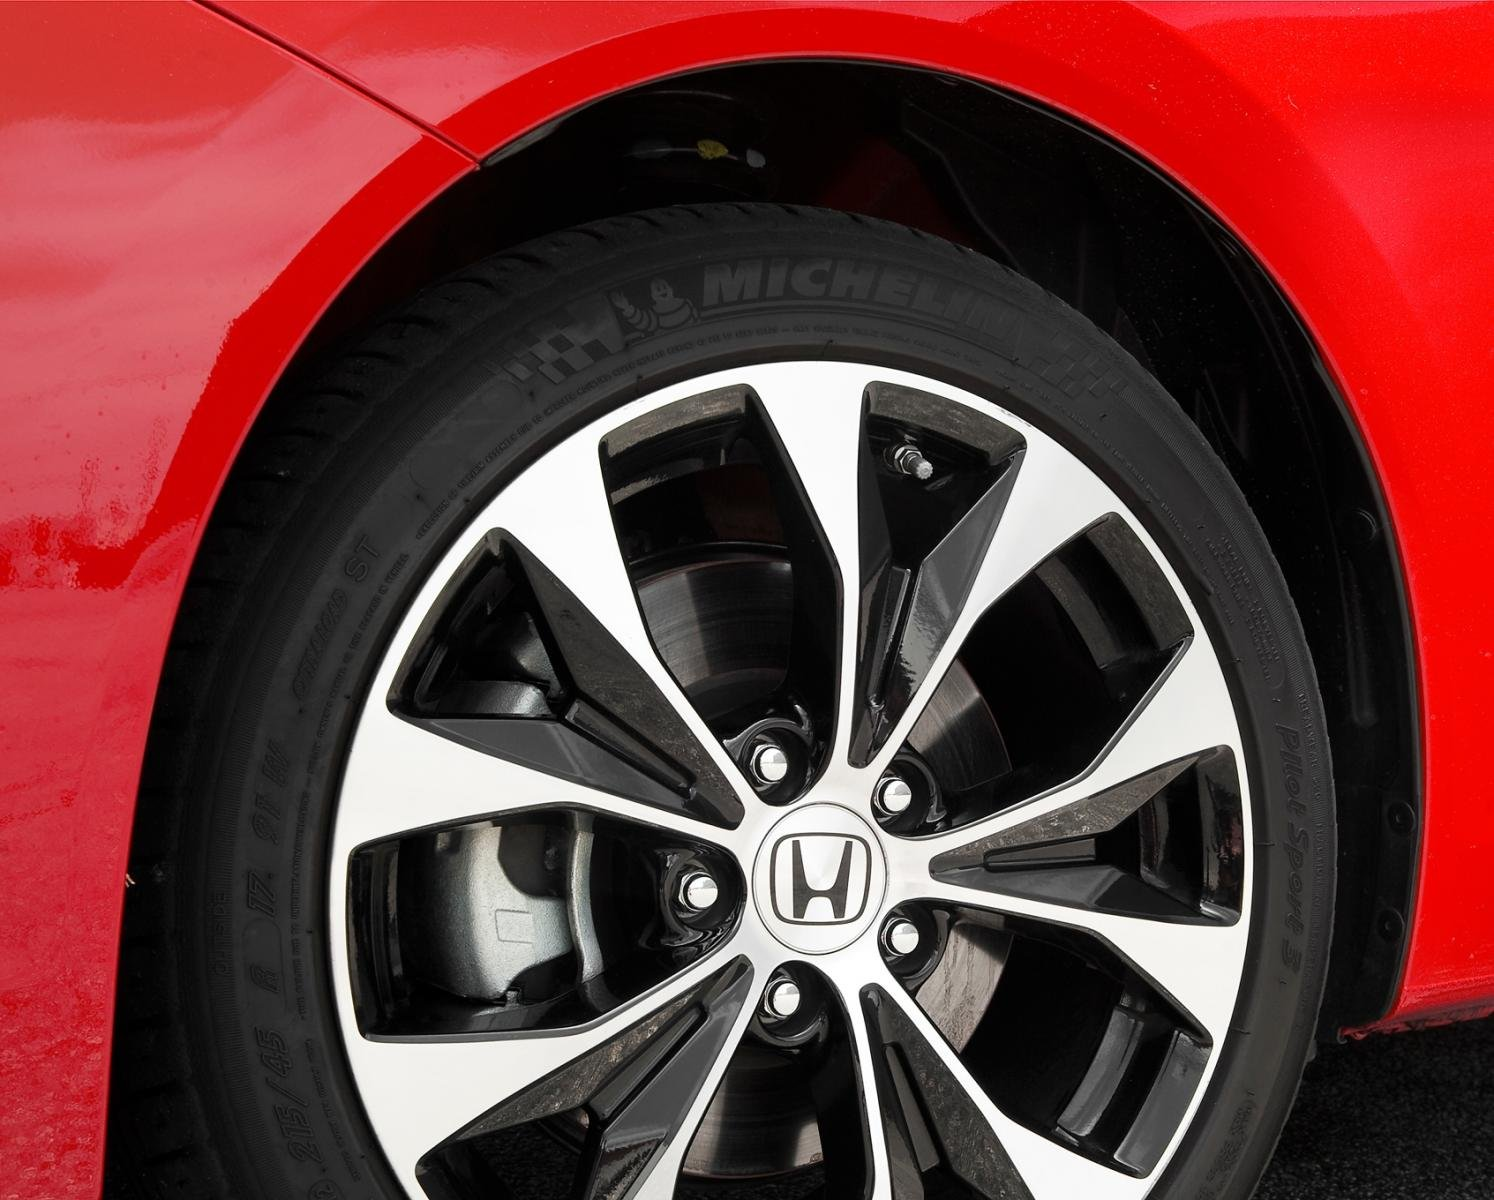 2012 Honda Civic si Rims 2012 Honda Civic si Rims And